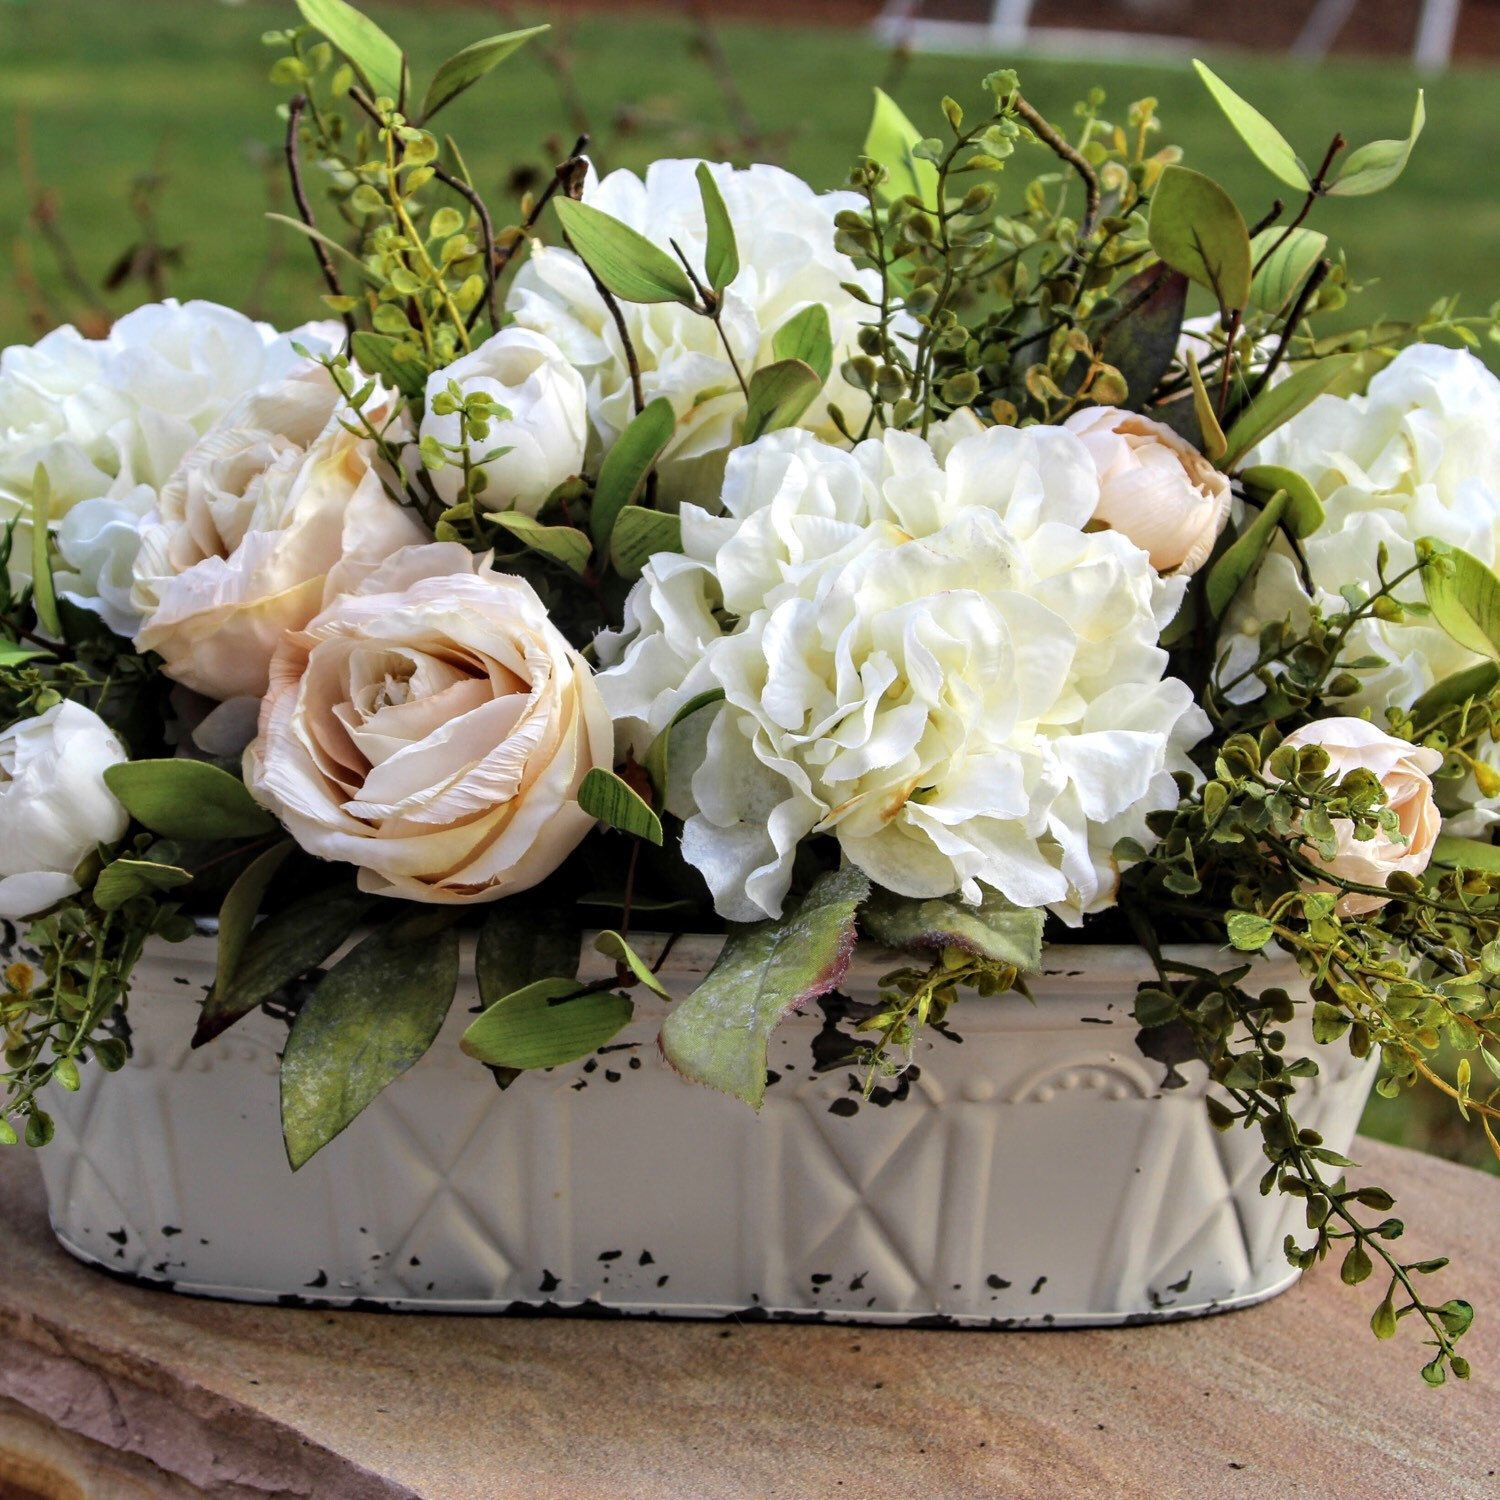 ly centerpiece with a French Country/Cottage Flair ... on french country rose art, french country trees, french country cottage gardens, french country flower, french country vegetable gardens,